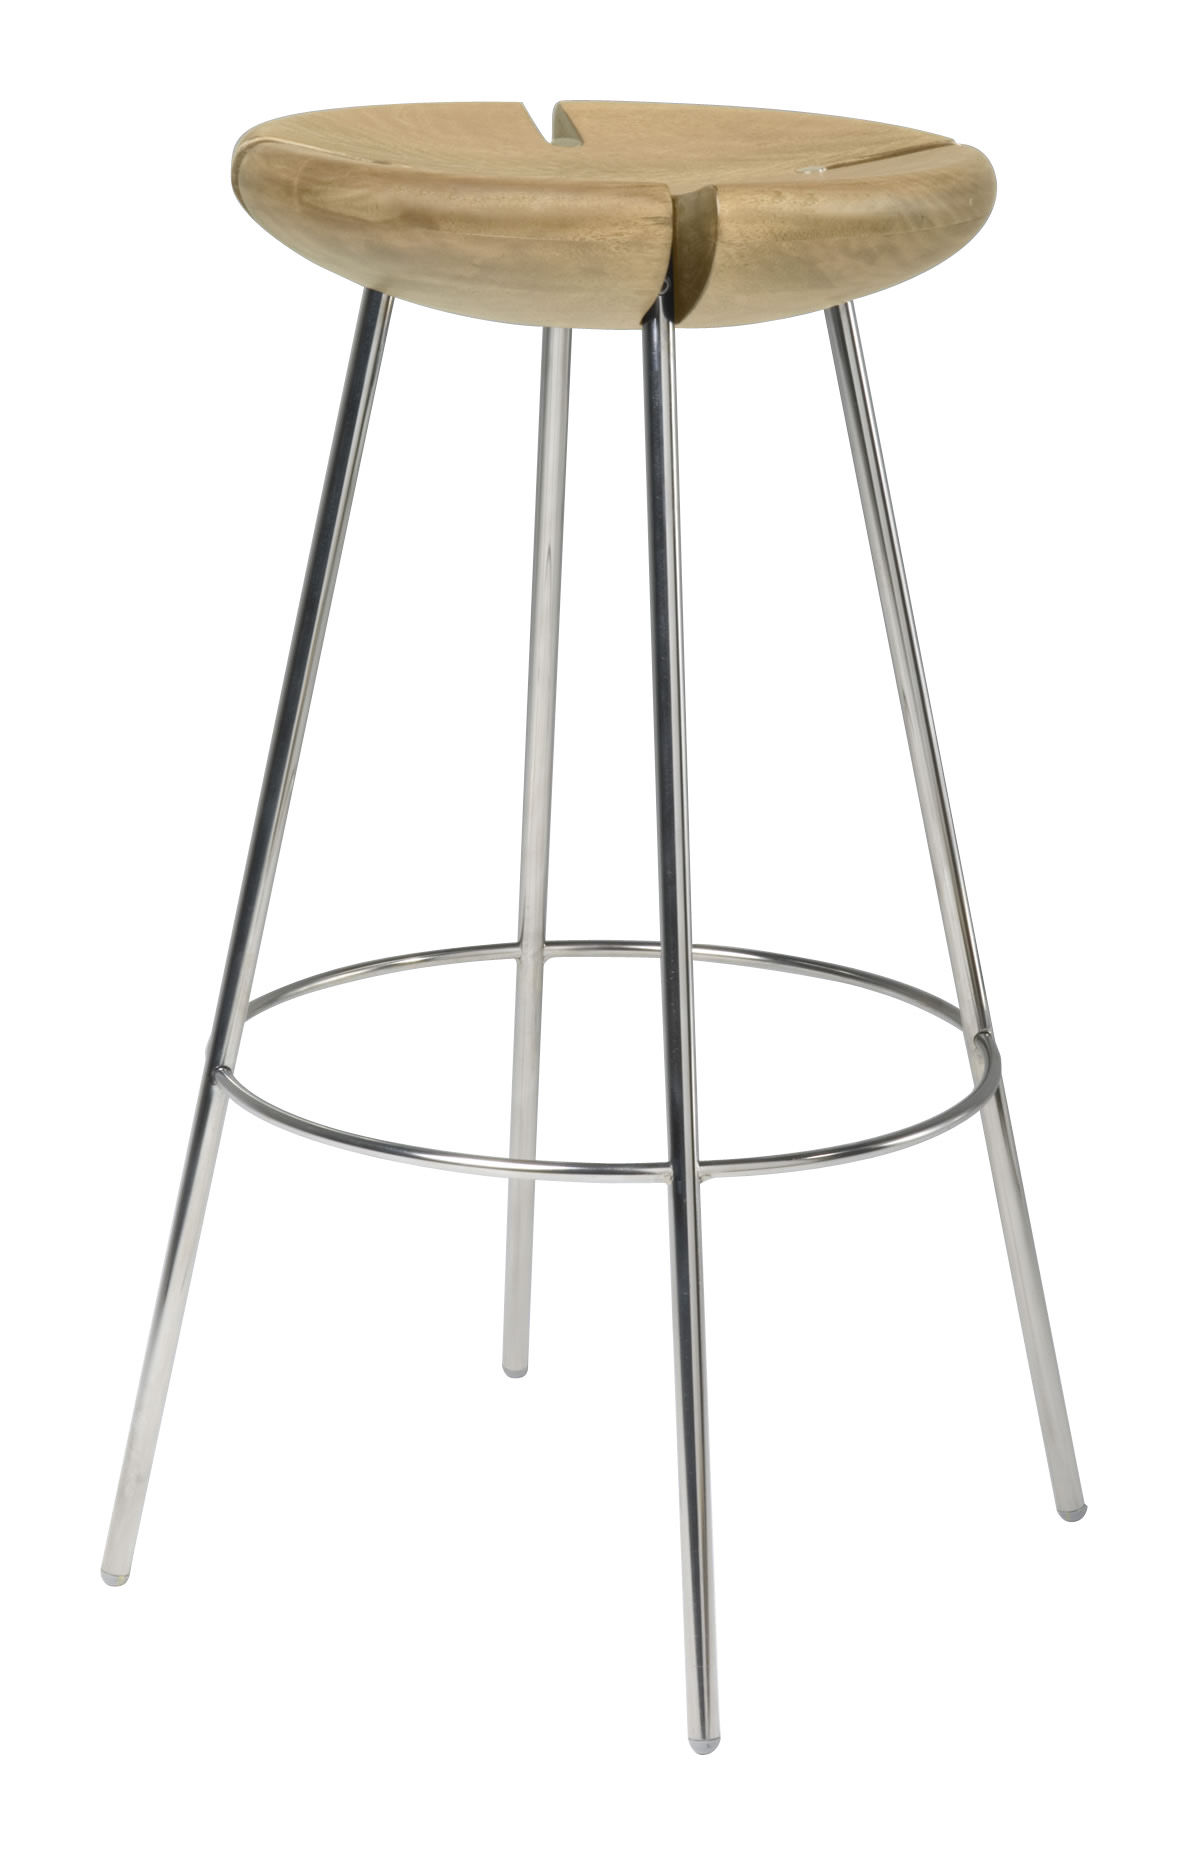 Furniture - Bar Stools - Tribo Bar stool - H 76 cm - Wood & metal legs by Objekto - solid oak with natural finish / Polished stainless steel structu - Oak, Polished stainless steel